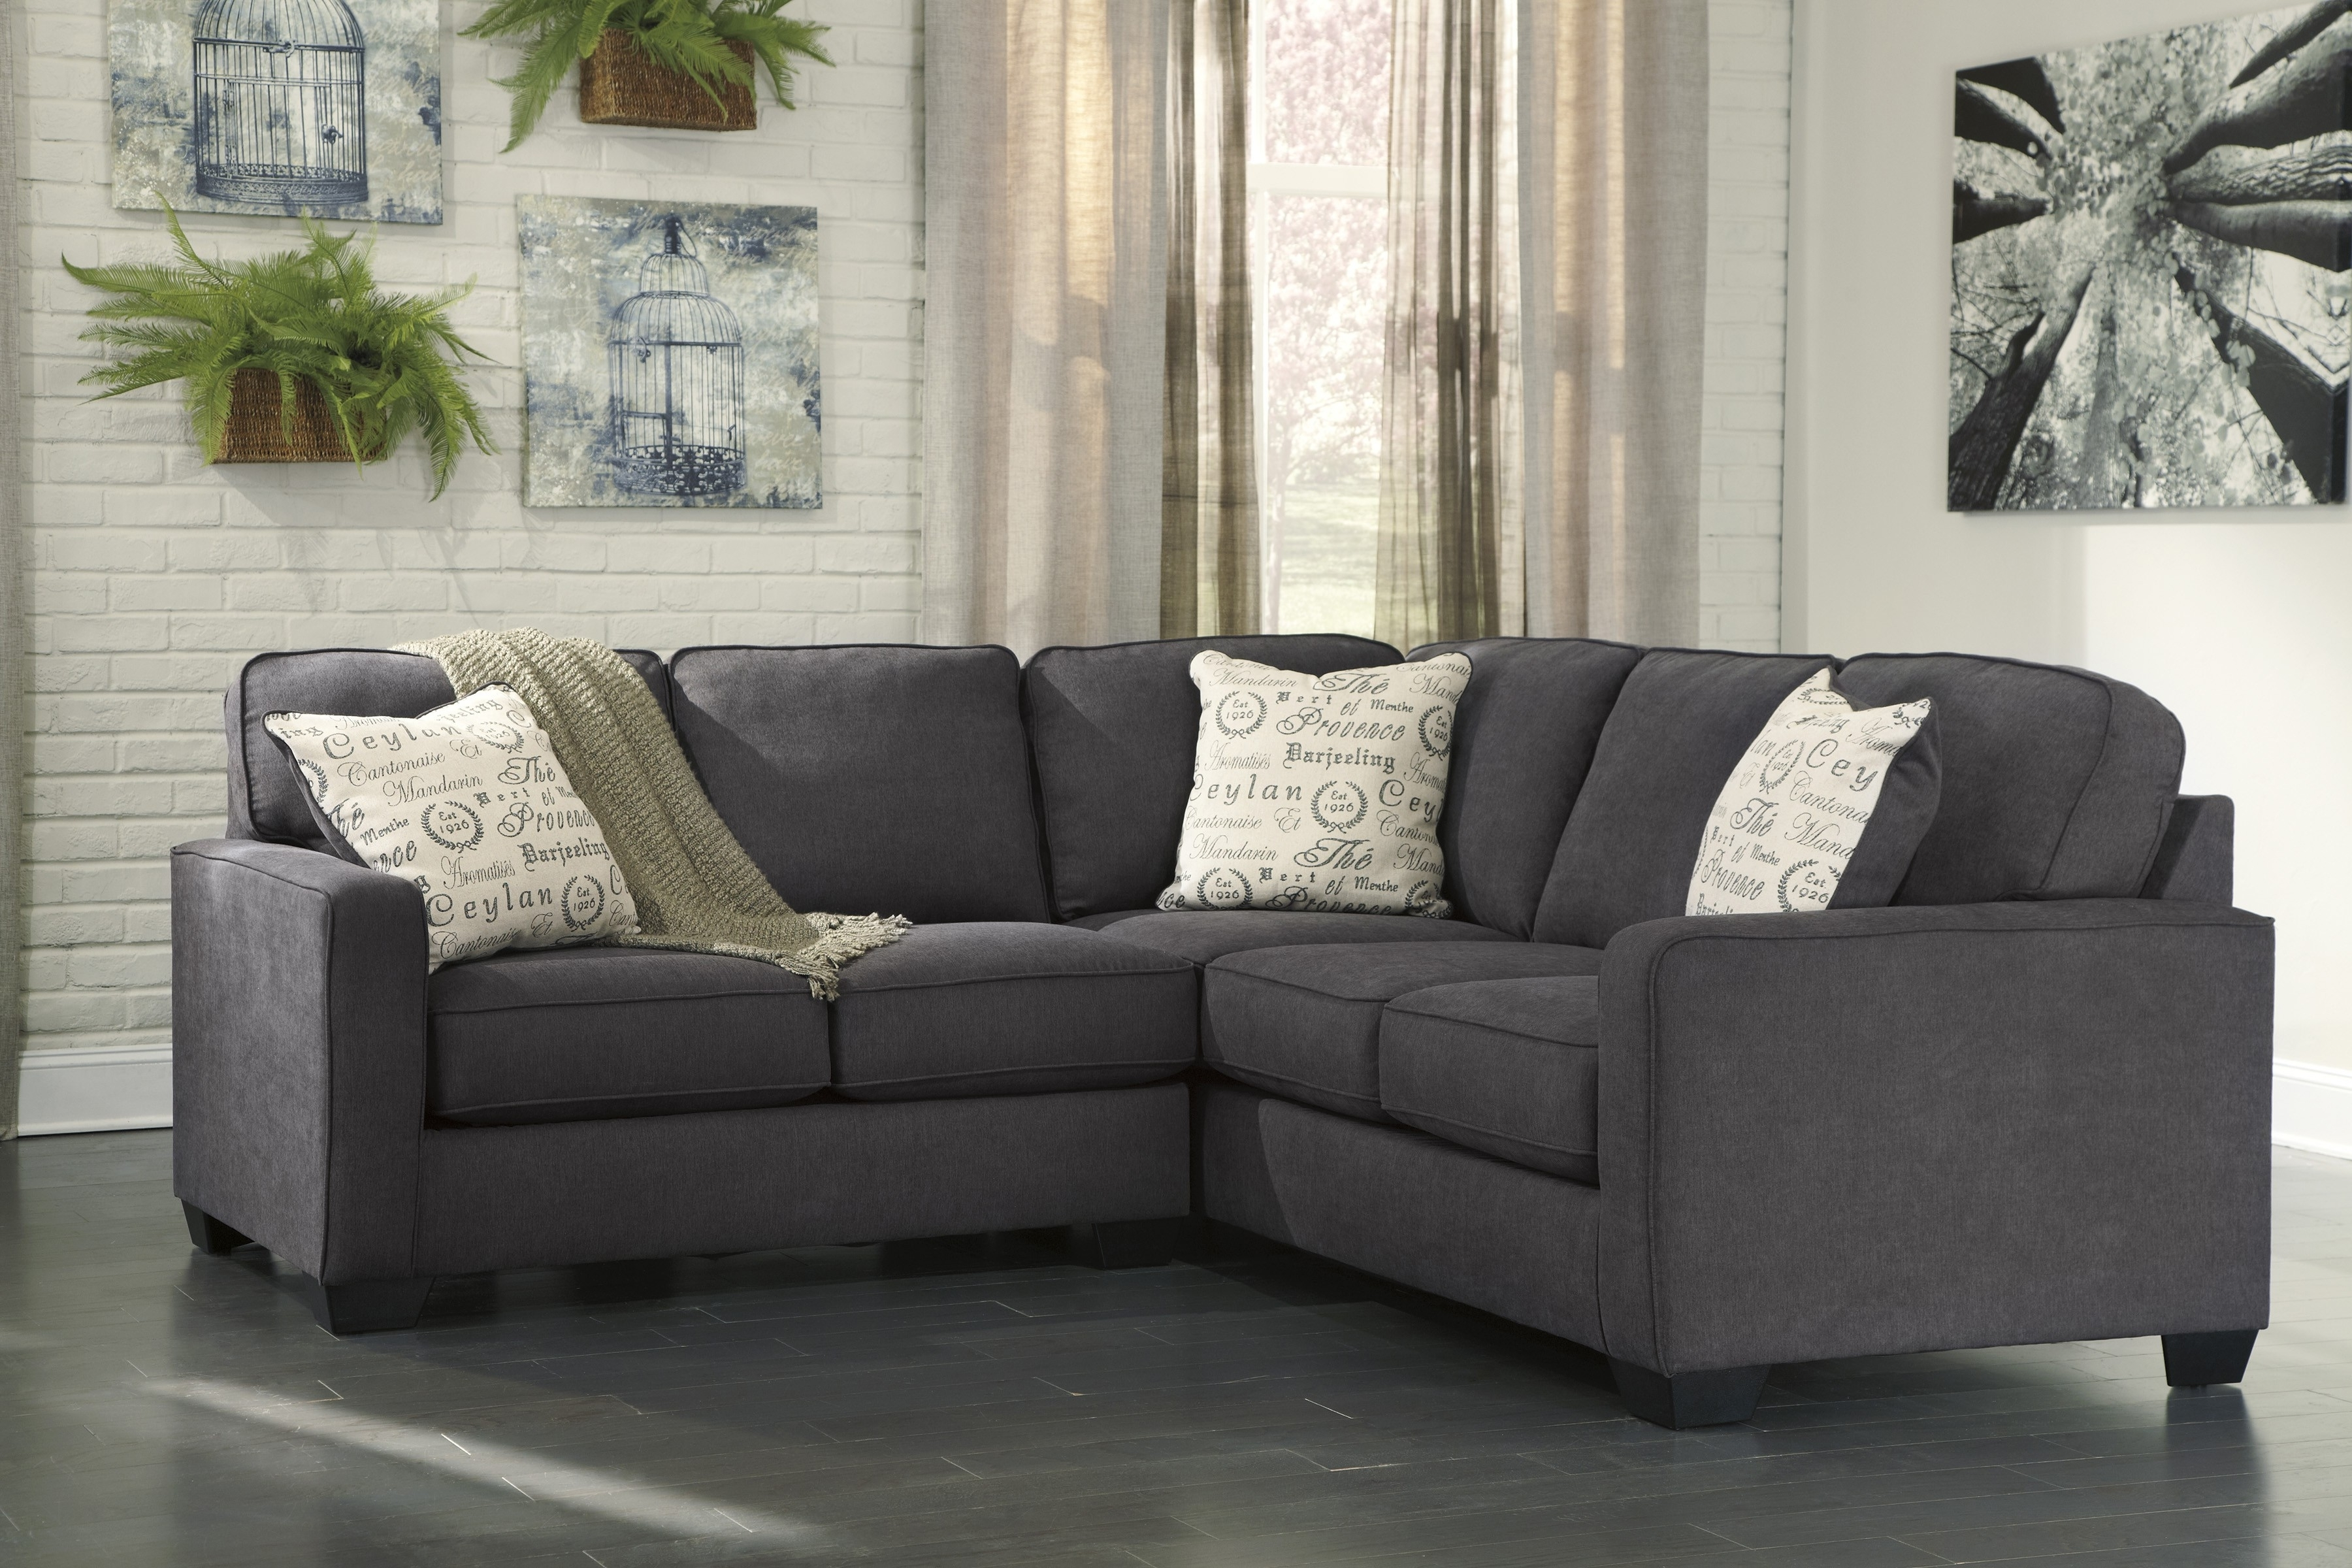 2 Piece Sectional Sofas With Chaise In Widely Used Alenya Charcoal 2 Piece Sectional Sofa For $ (View 11 of 15)